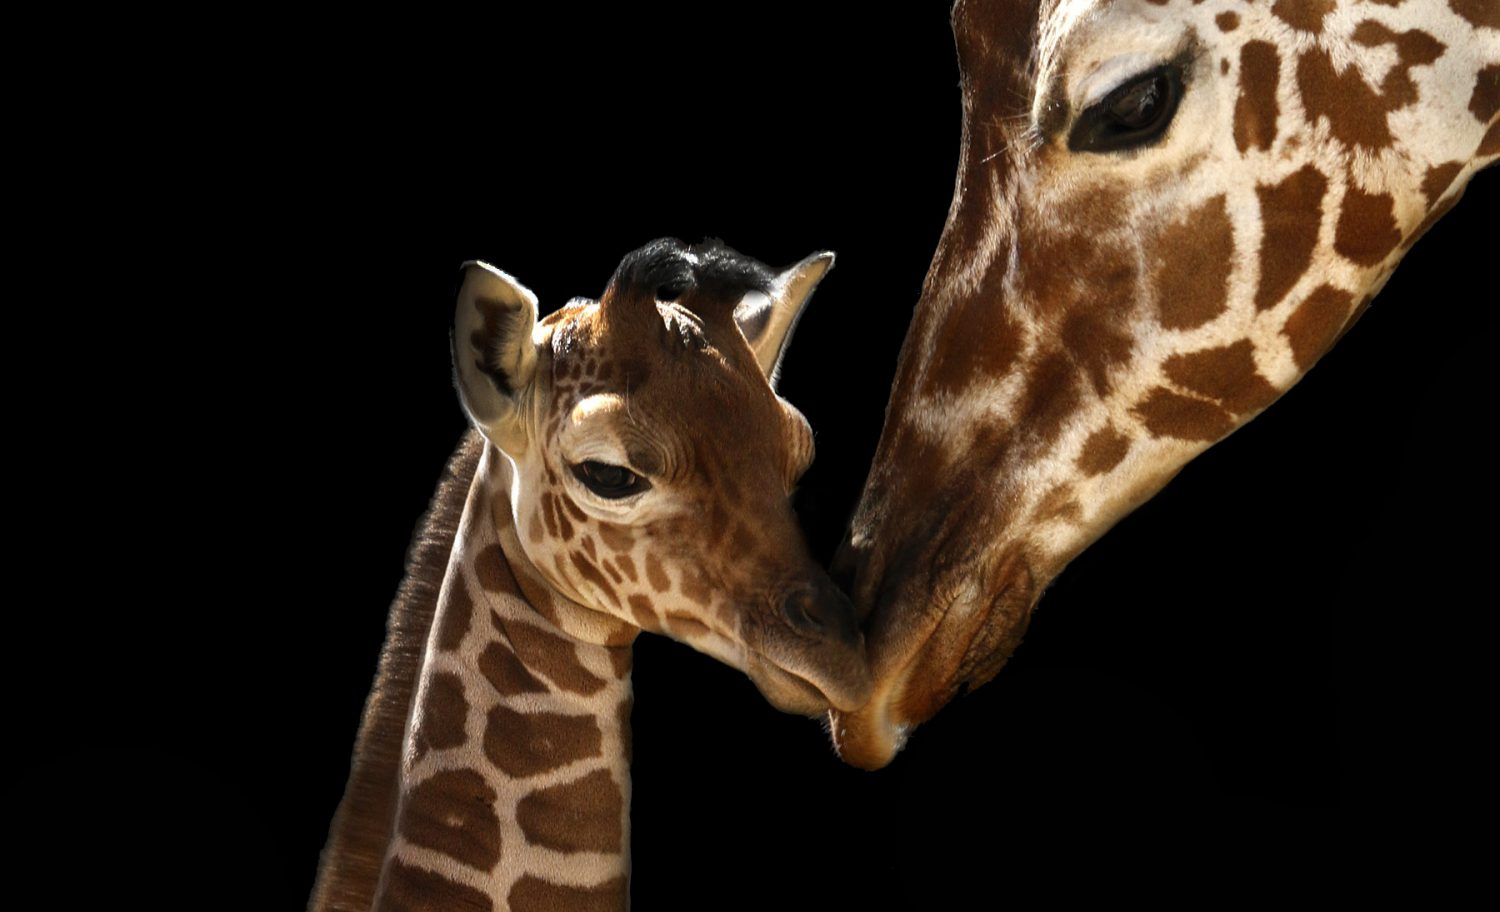 cropped-giraffe-baby-and-chrystal-black-bkgd-copy.jpg